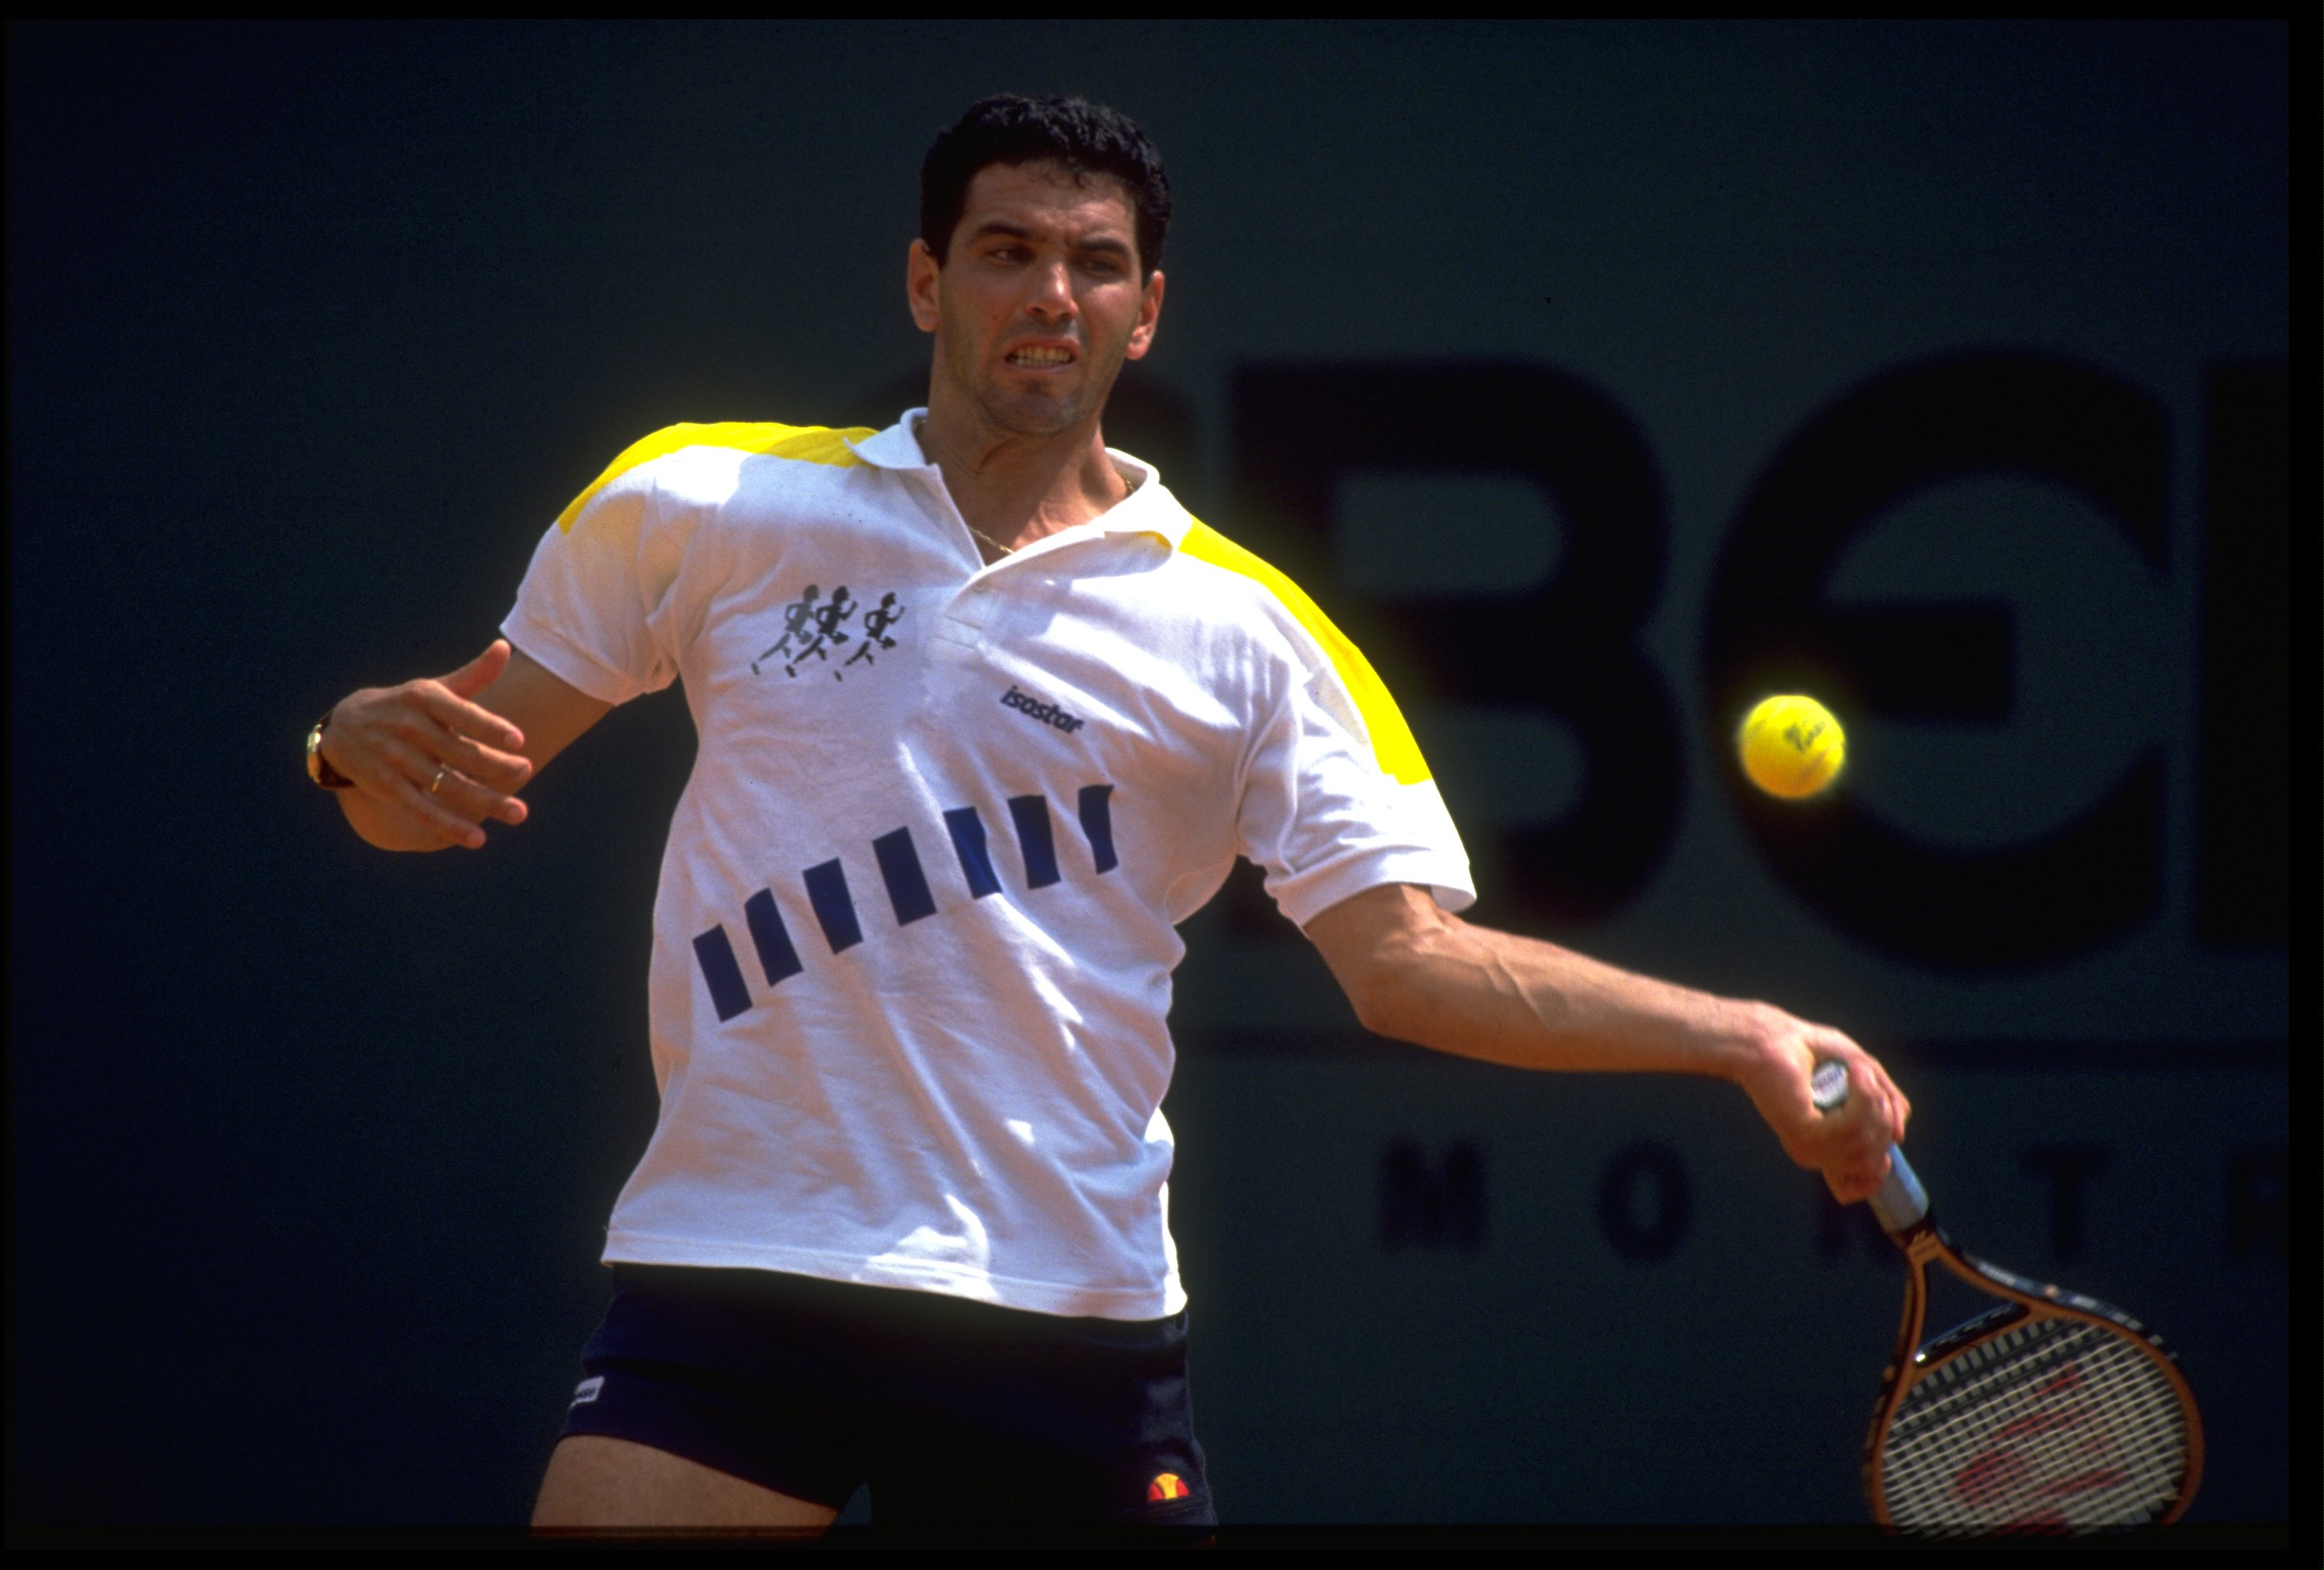 APR 1990:  ANDRES GOMEZ OF ECUADOR PLAYS A BACKHAND STROKE DURING A MATCH AT THE 1990 MONTE CARLO OPEN.